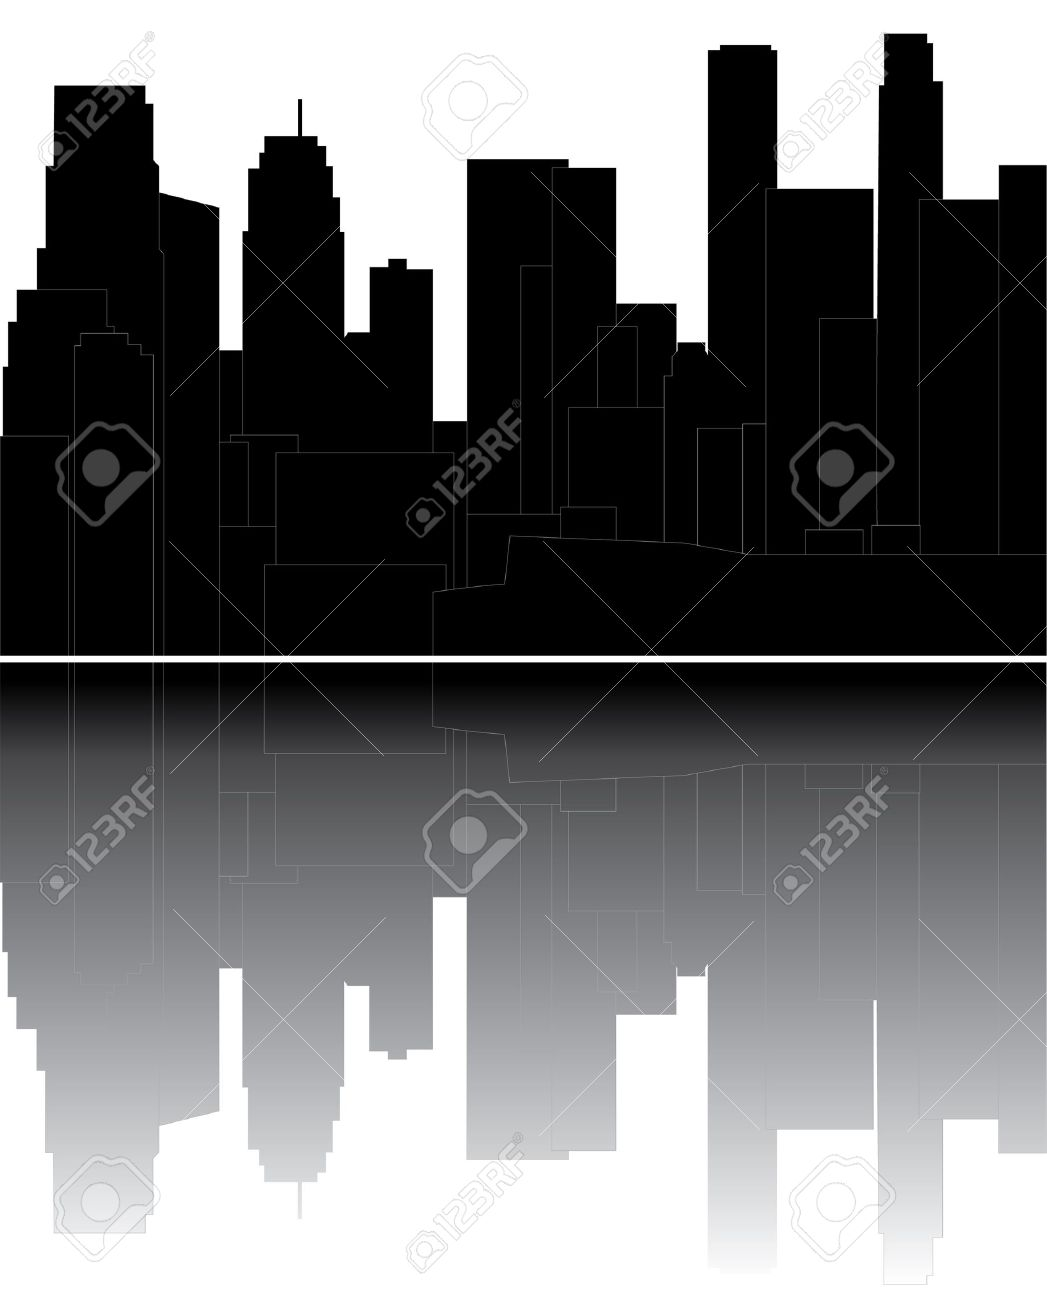 Clipart los angeles.